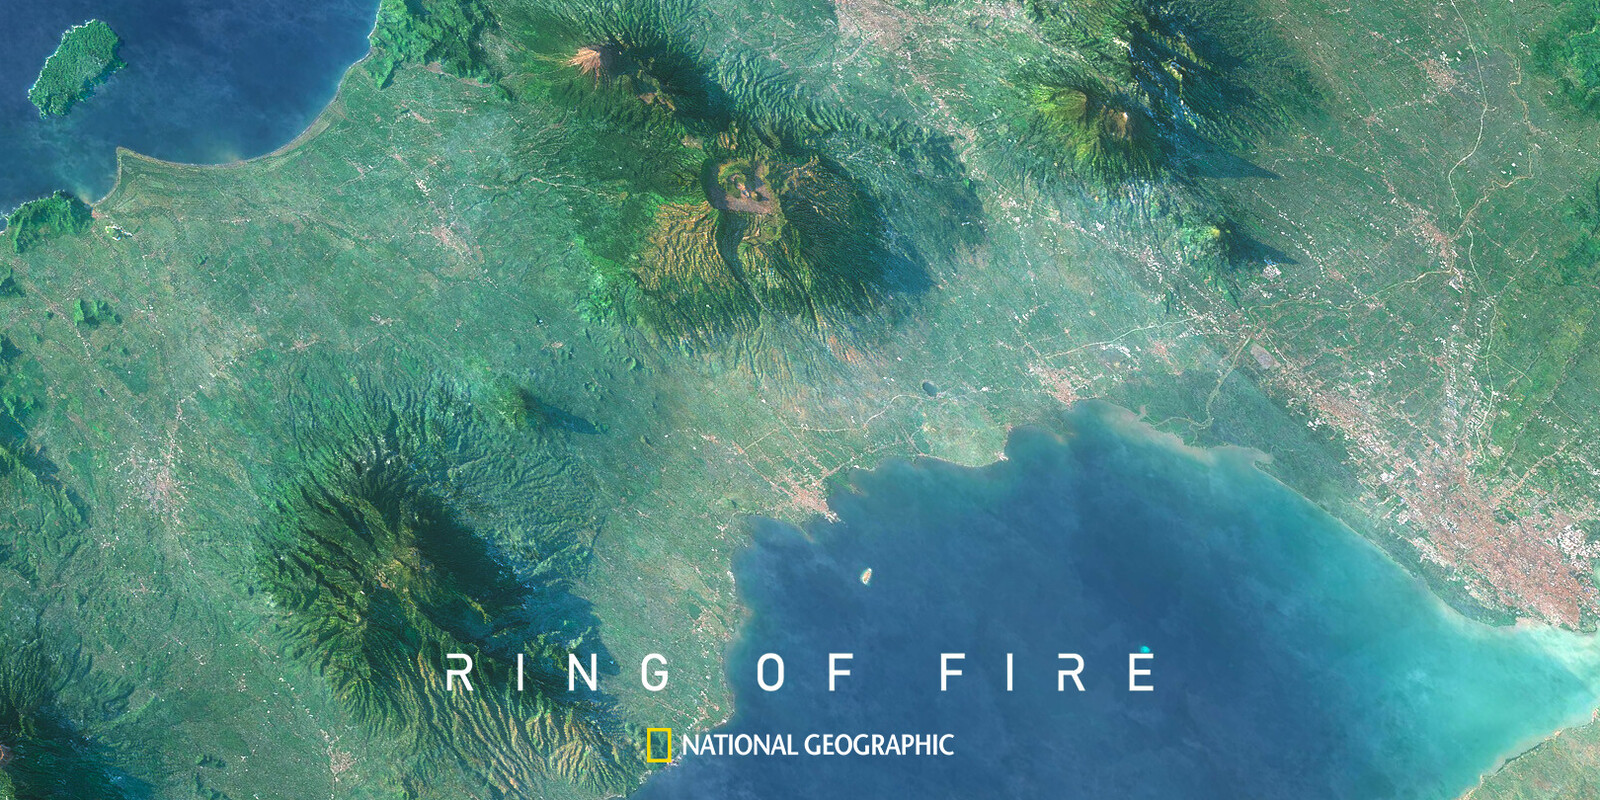 National Geographic - Ring of Fire